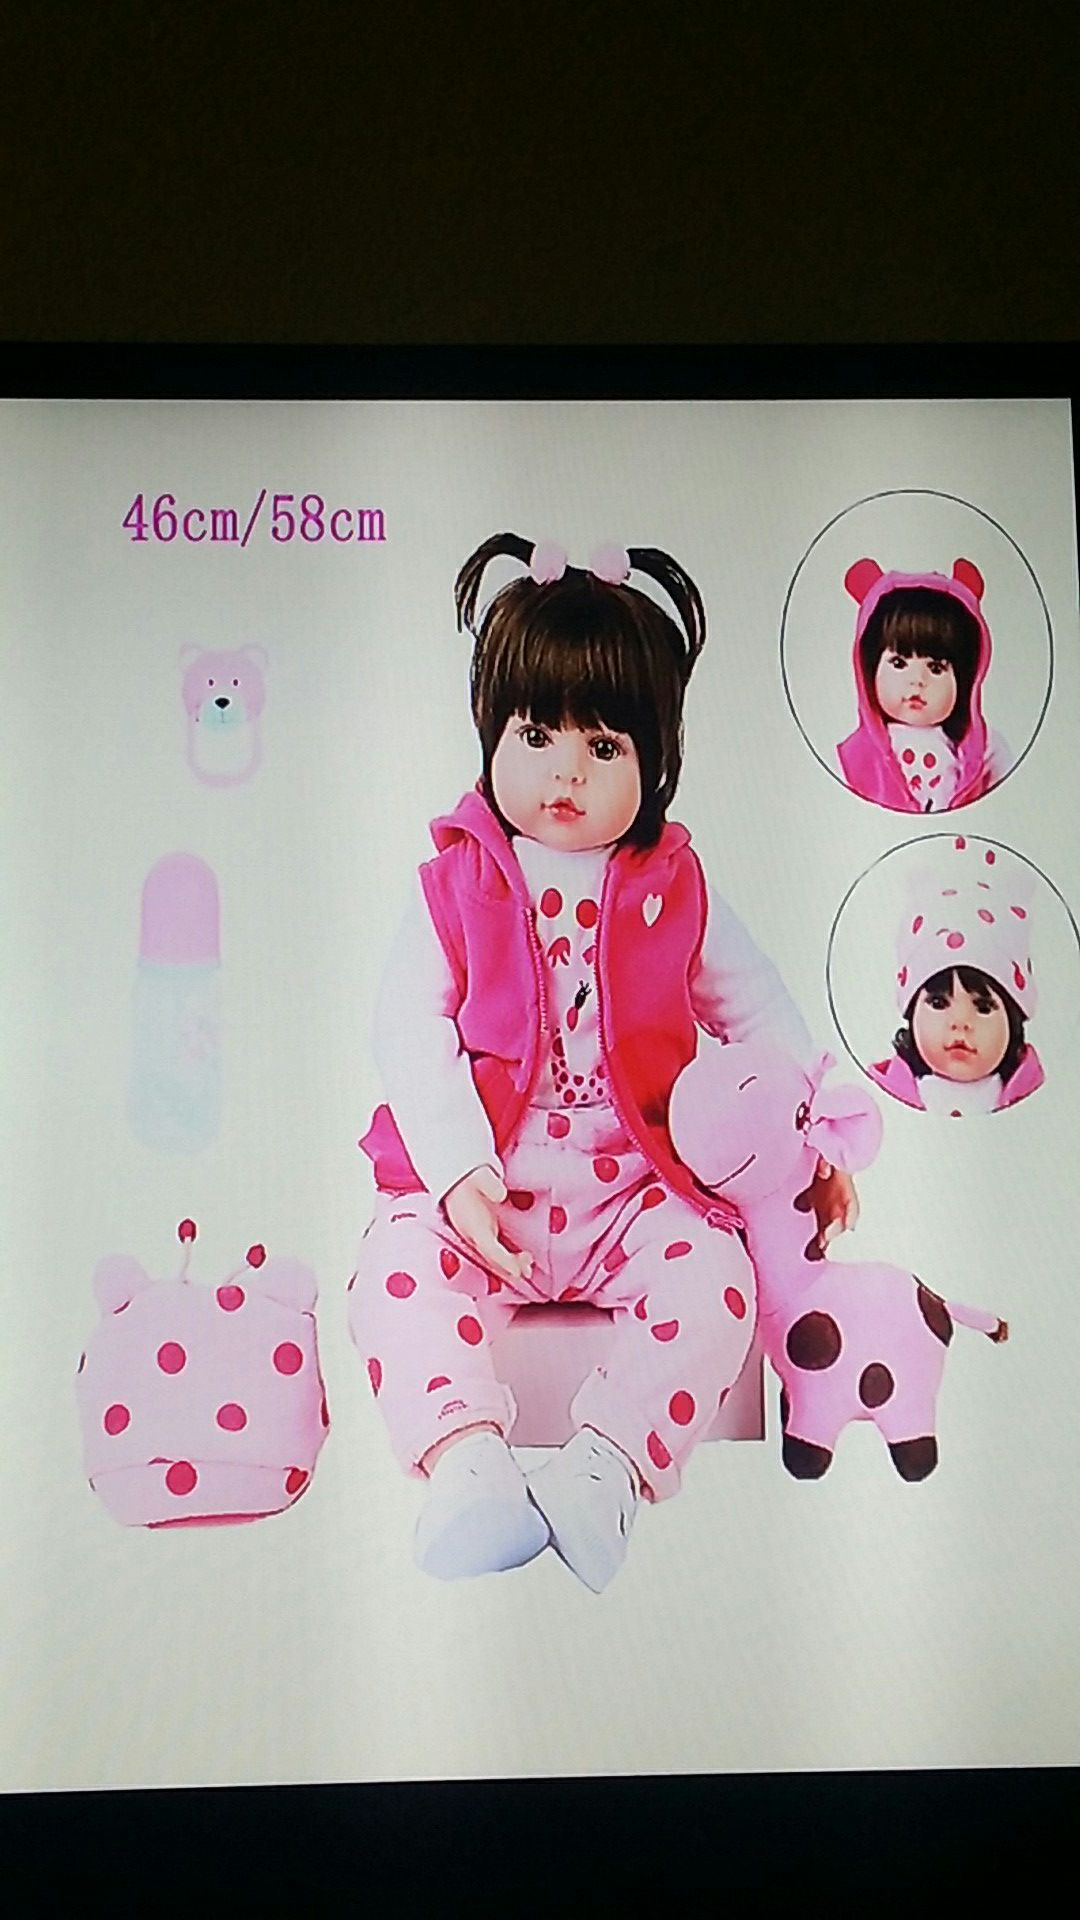 NEW NEVER USED Lifelike Silicone Doll 58 cm / Great Heirloom Gift